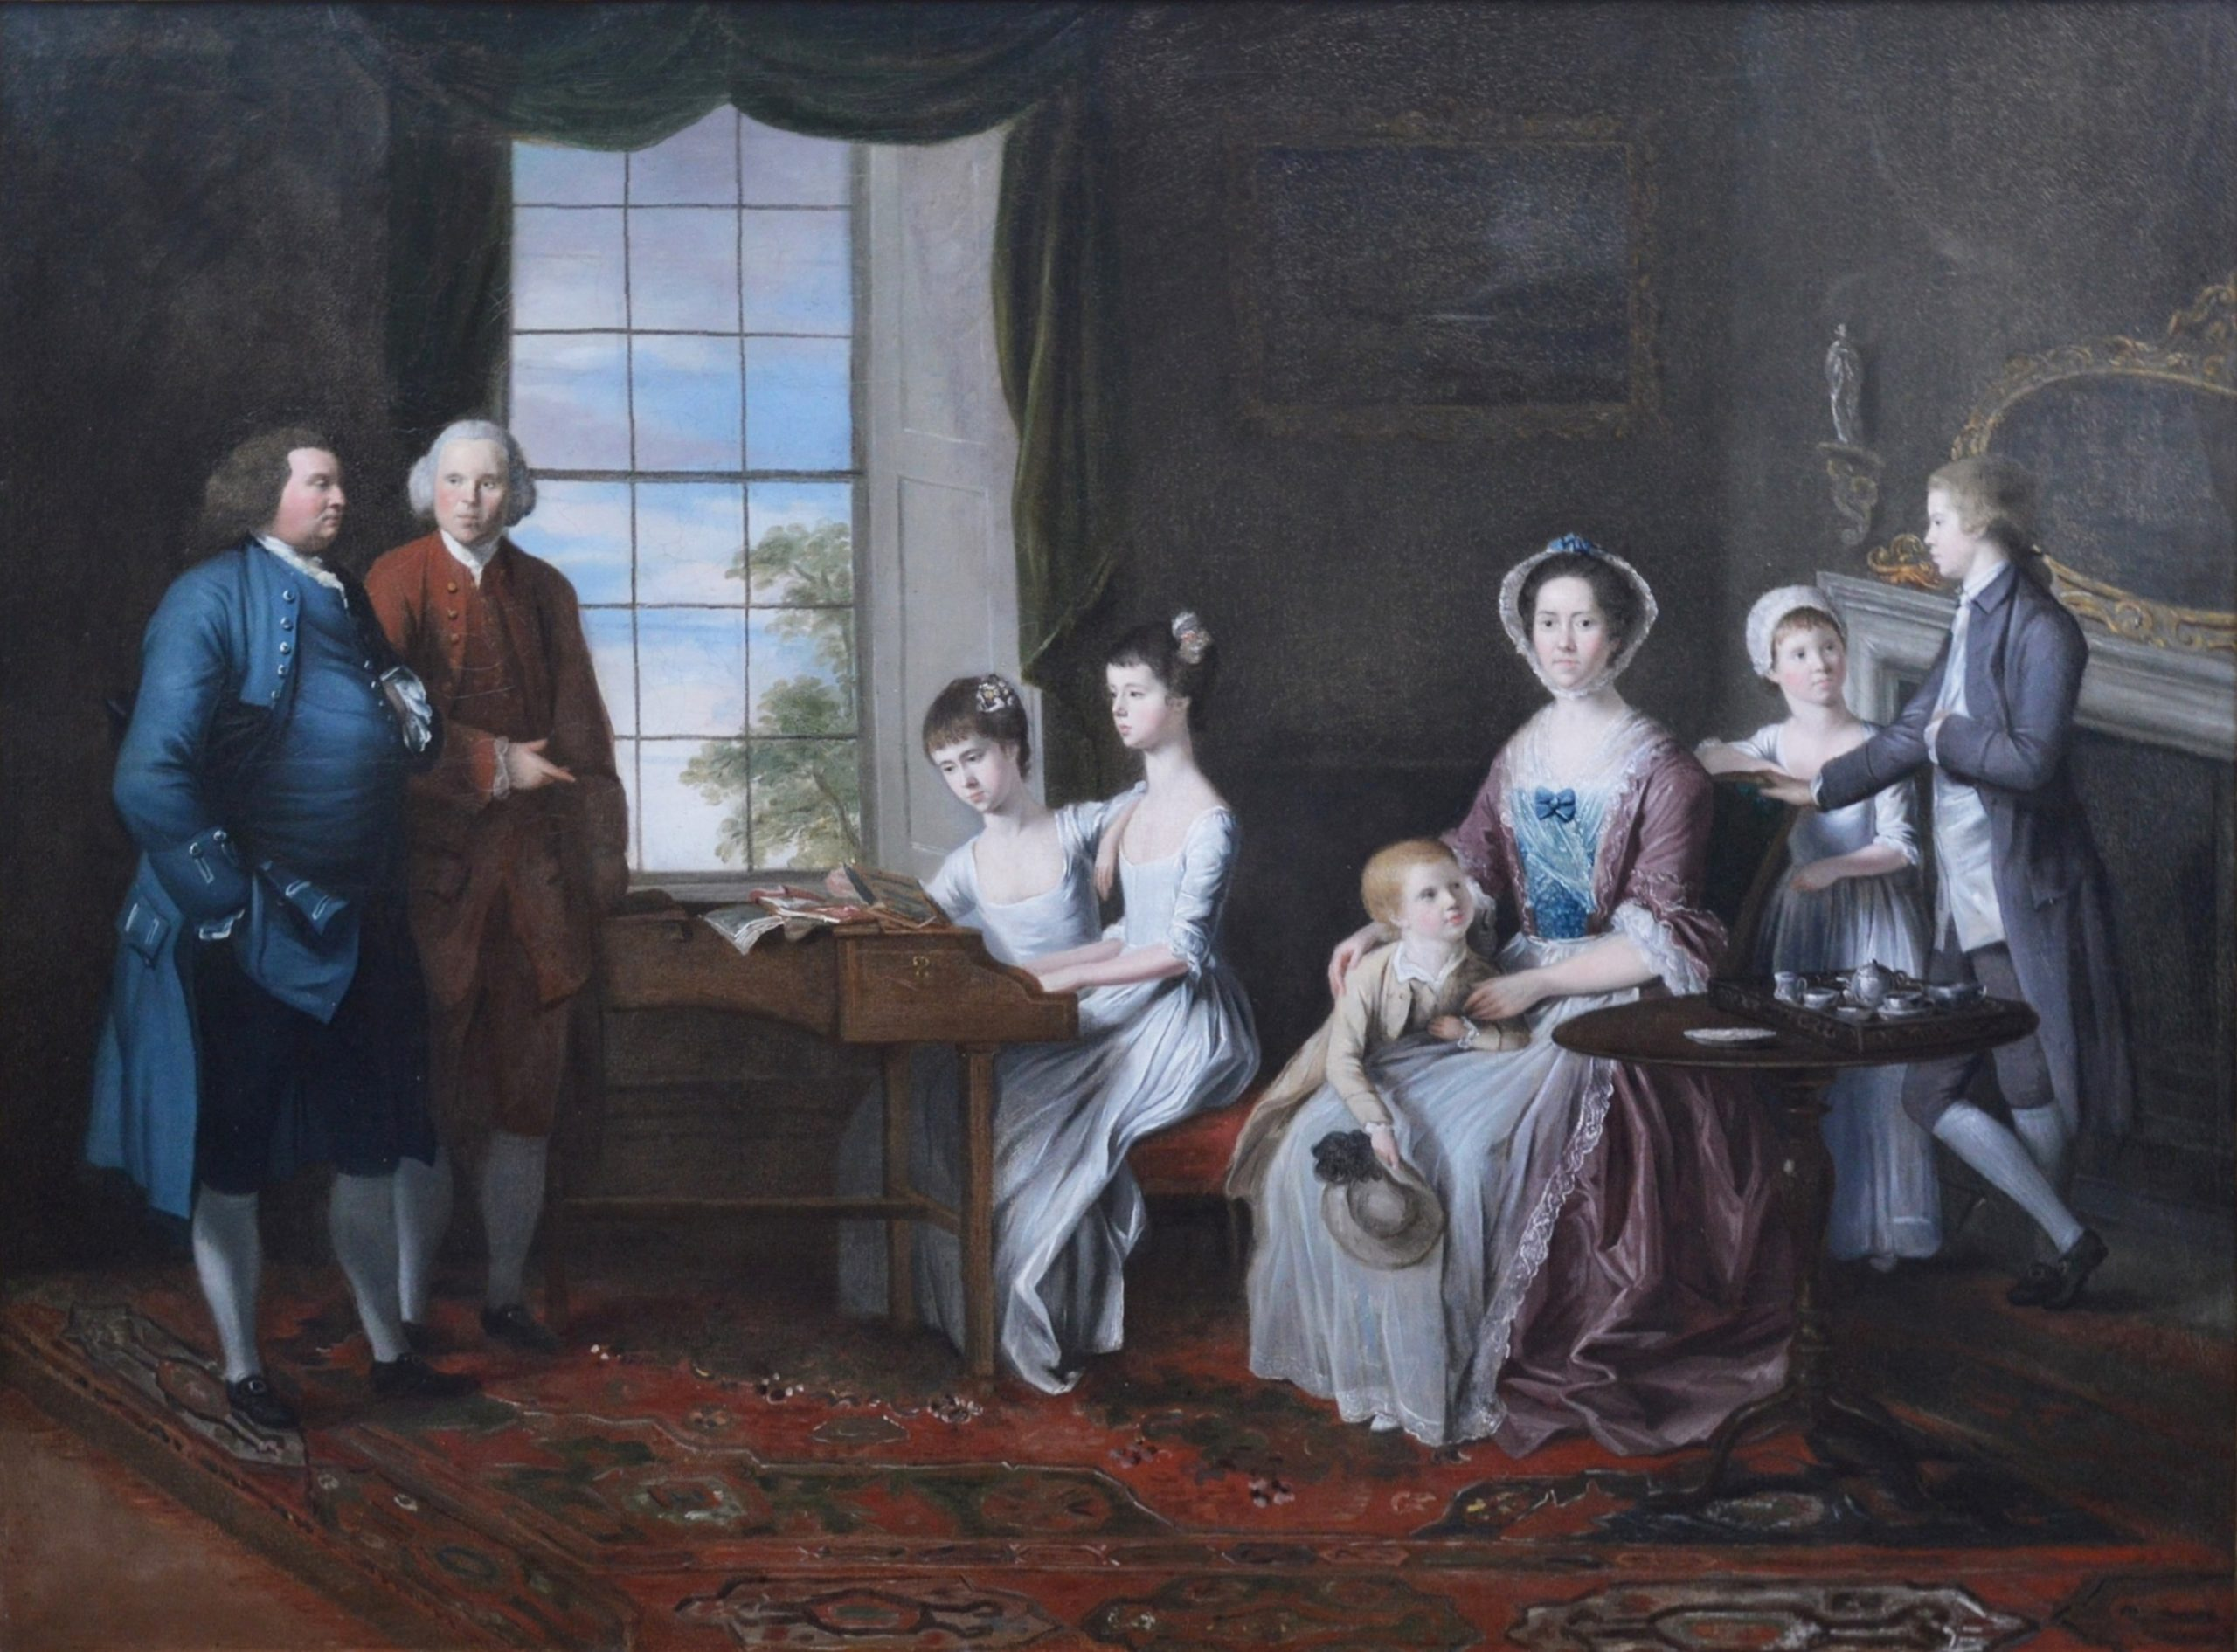 The Hopkins Family - Large 18th Century Group Portrait Oil Painting Image